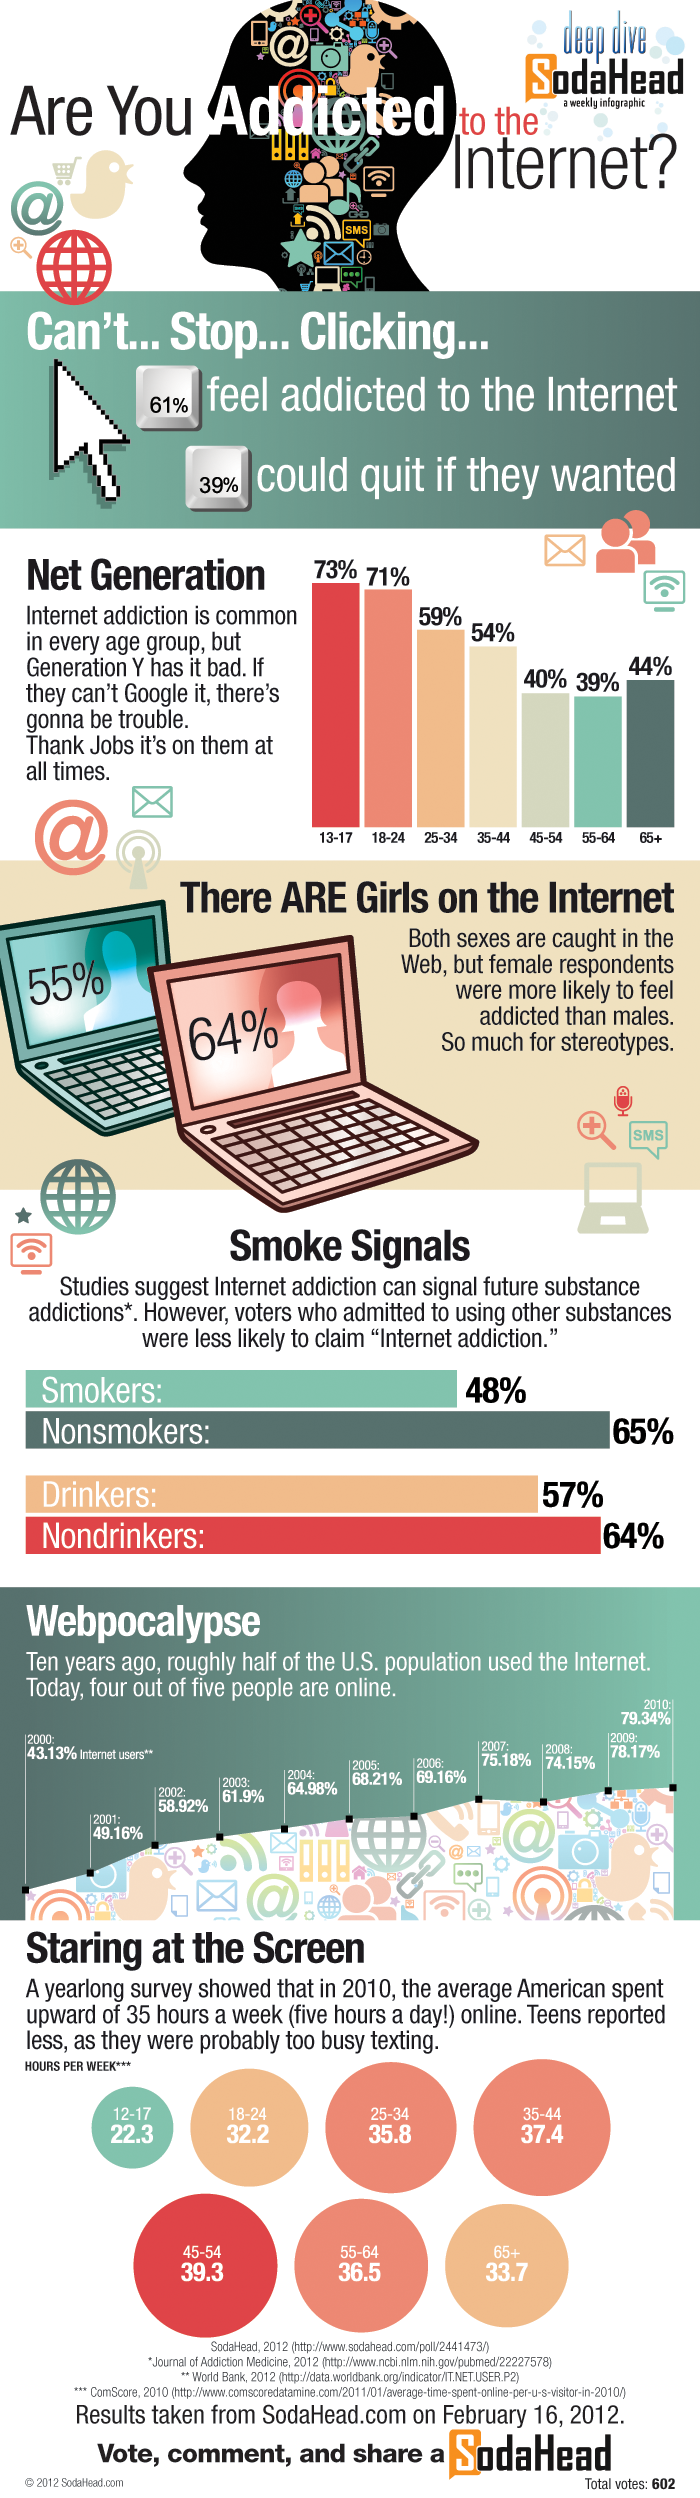 Infografik: Are you addicted to the internet?